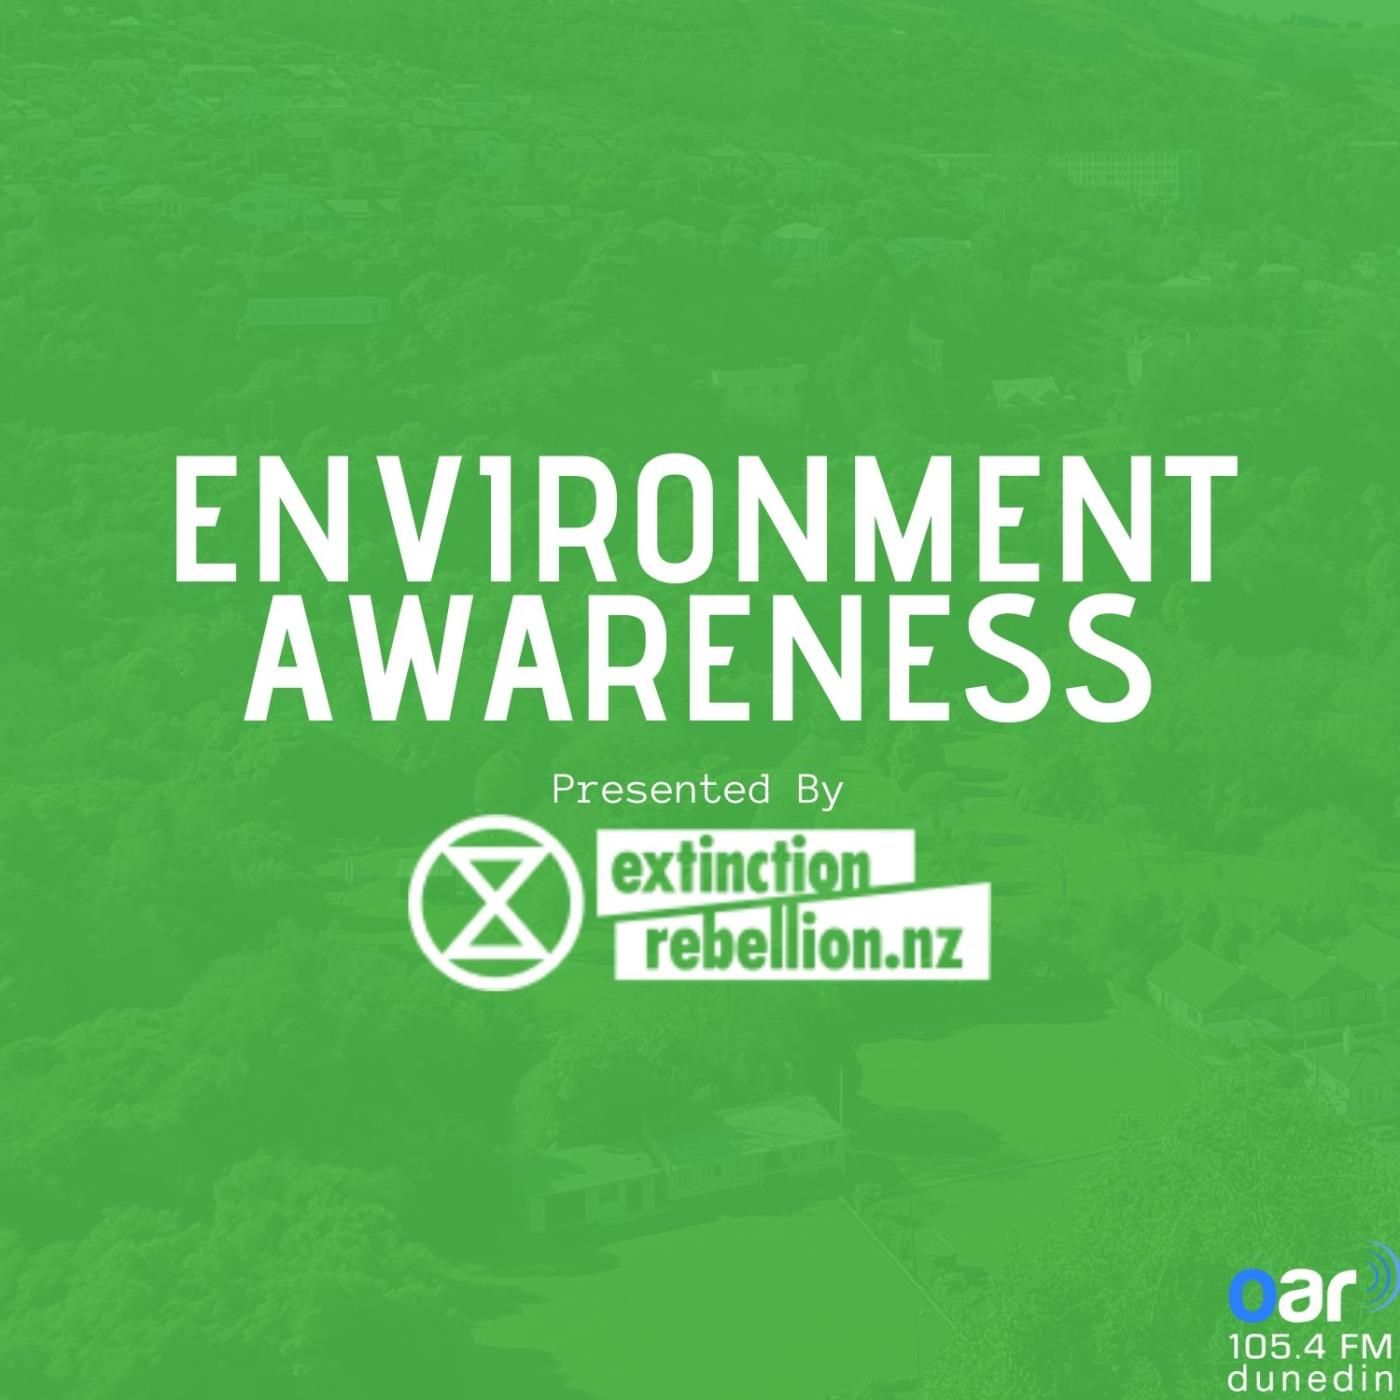 Environment Awareness - 23-07-2020 - Show 42 - Politics and Activism - Rachael Laurie